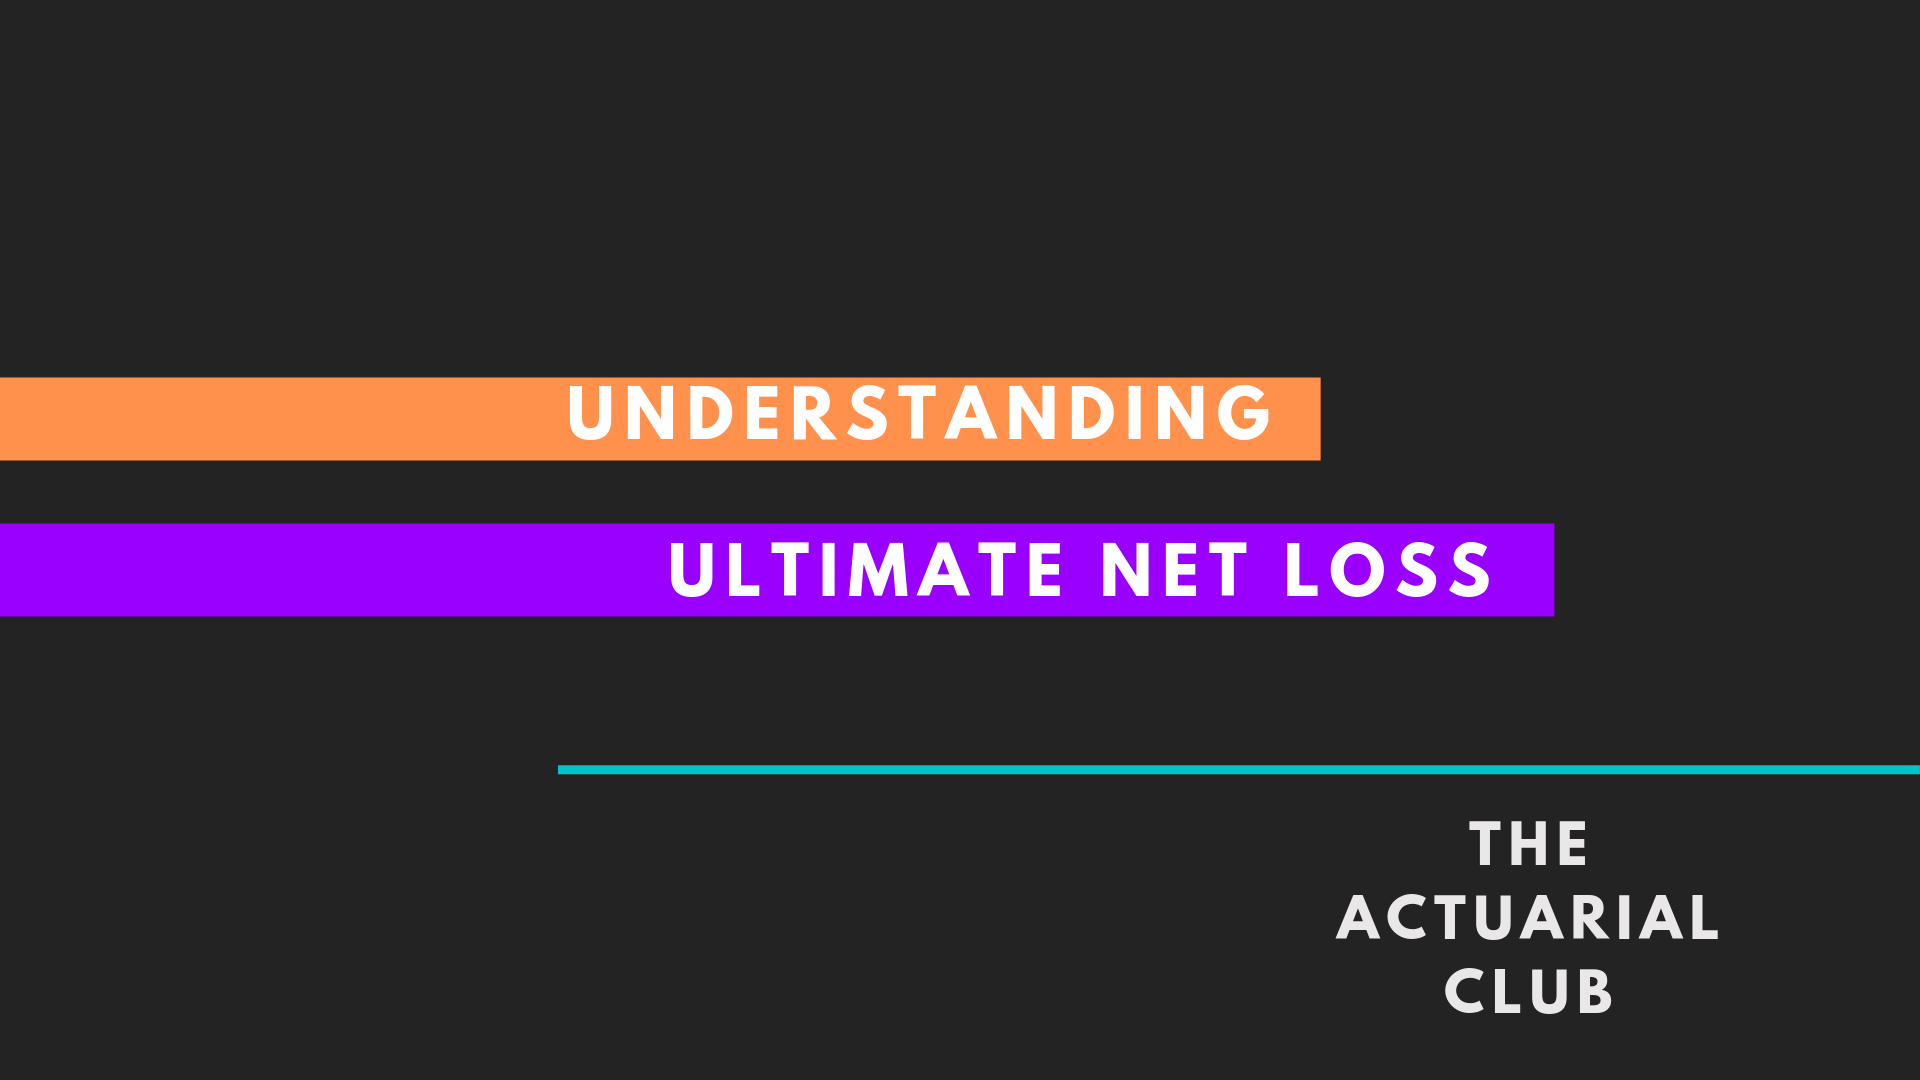 Ultimate Net Loss